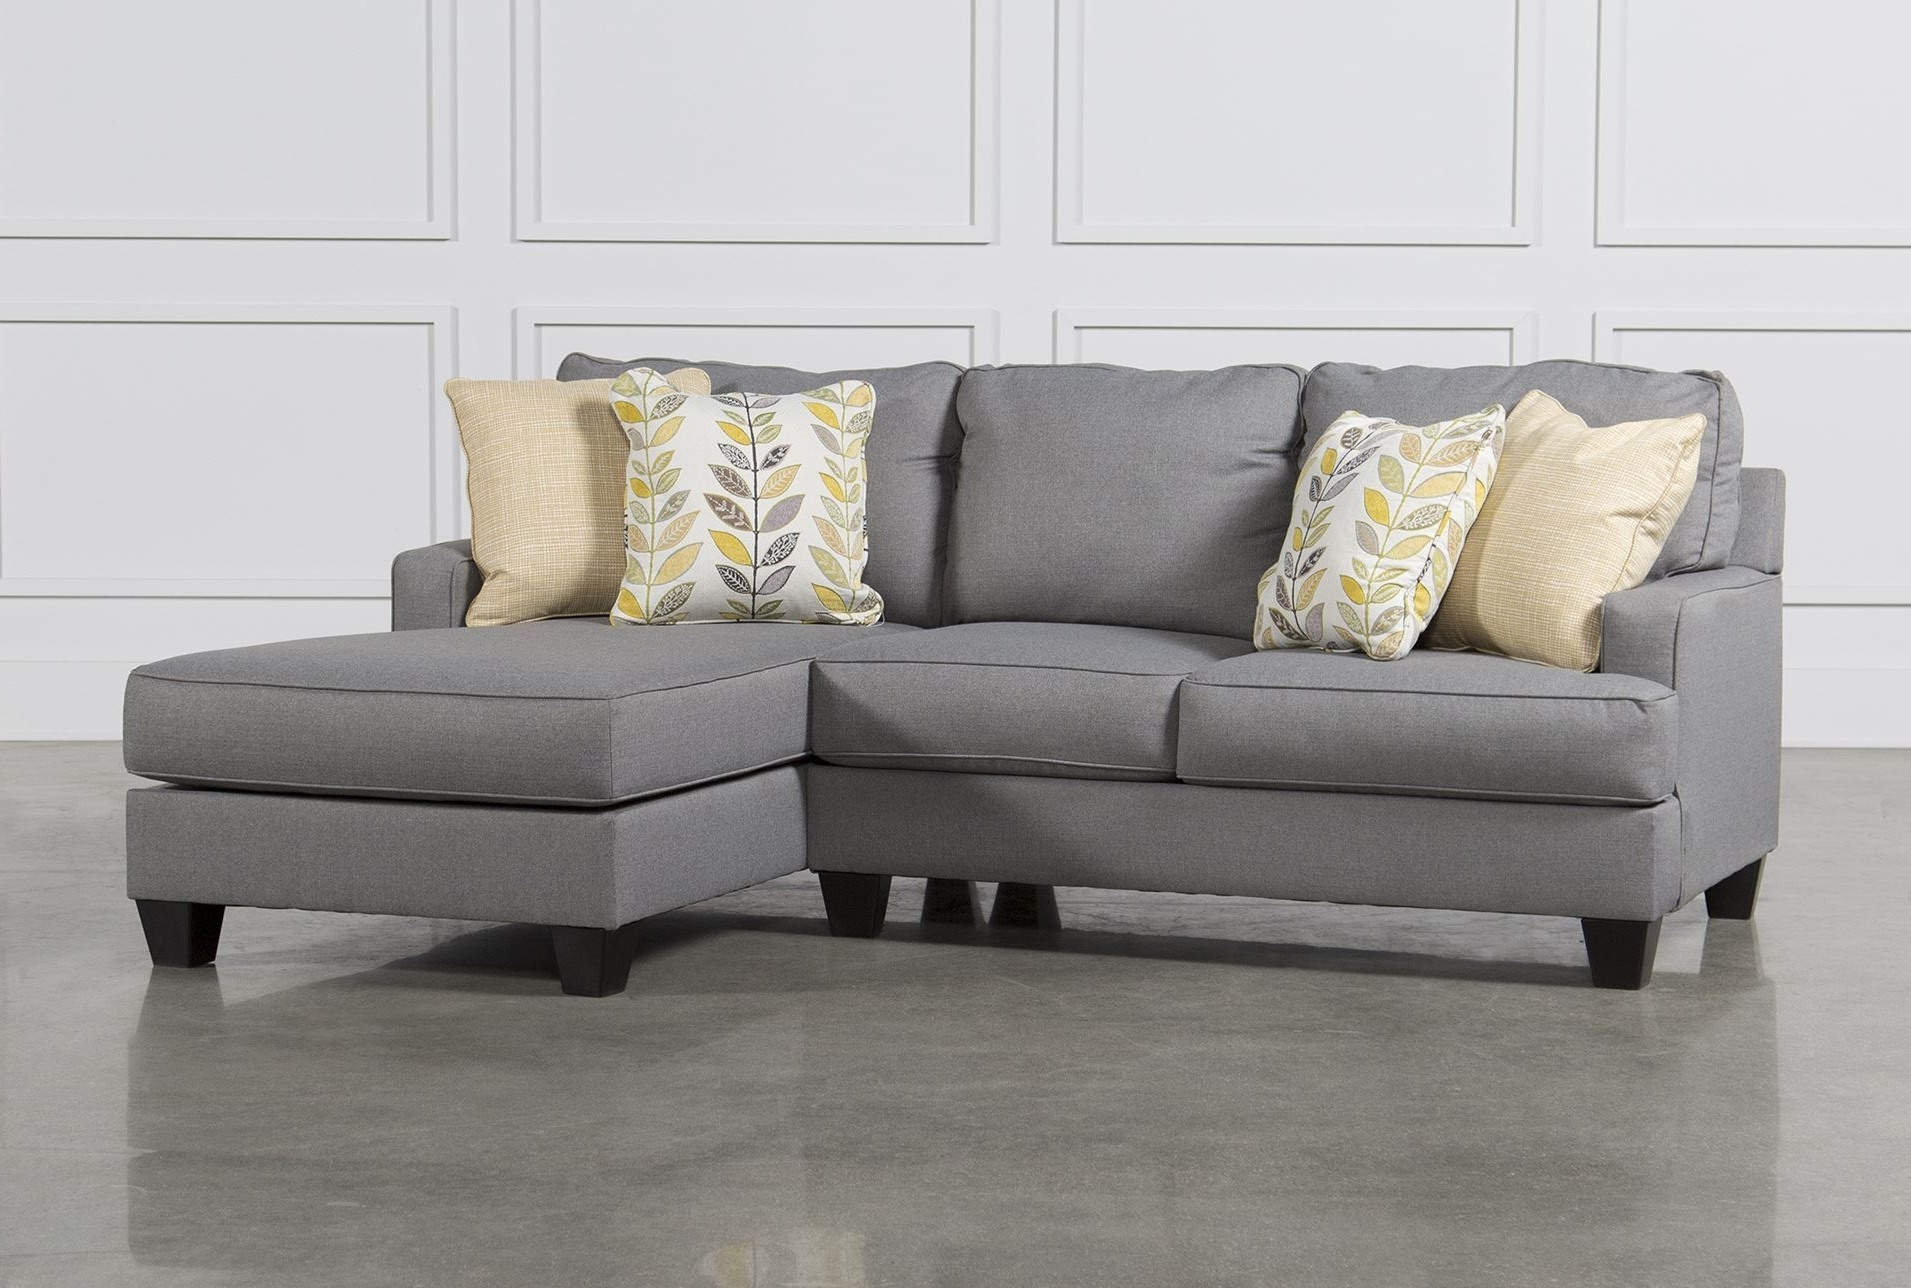 Mi Casa Regarding 2 Piece Sectional Sofas With Chaise (View 4 of 15)